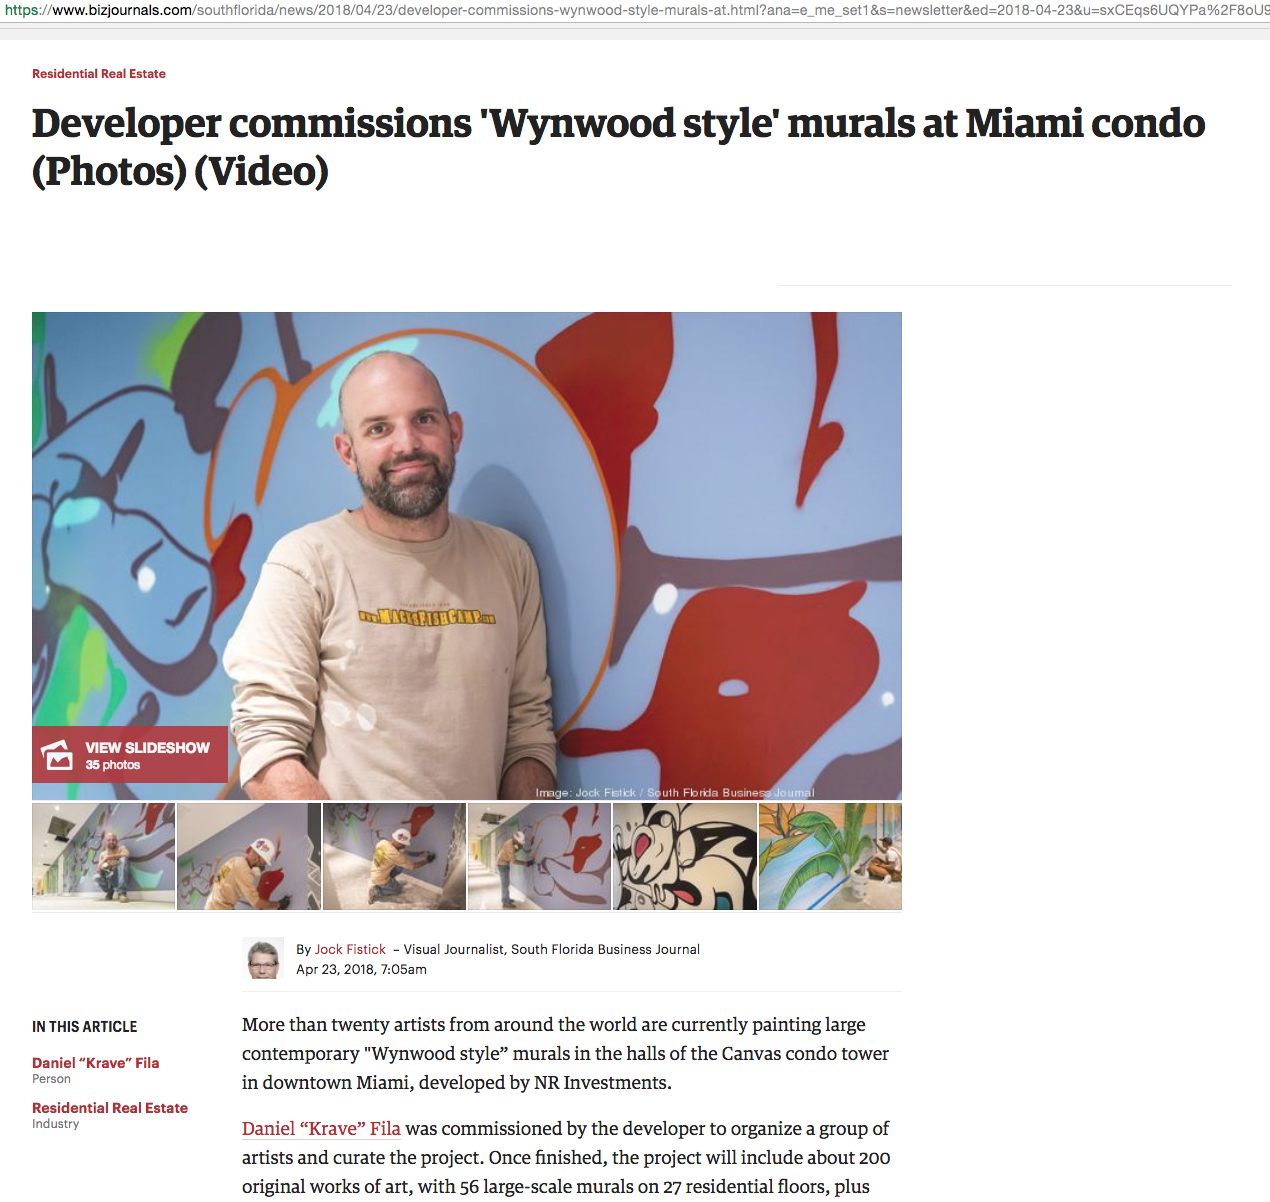 Developer commissions 'Wynwood style' murals at Miami condo